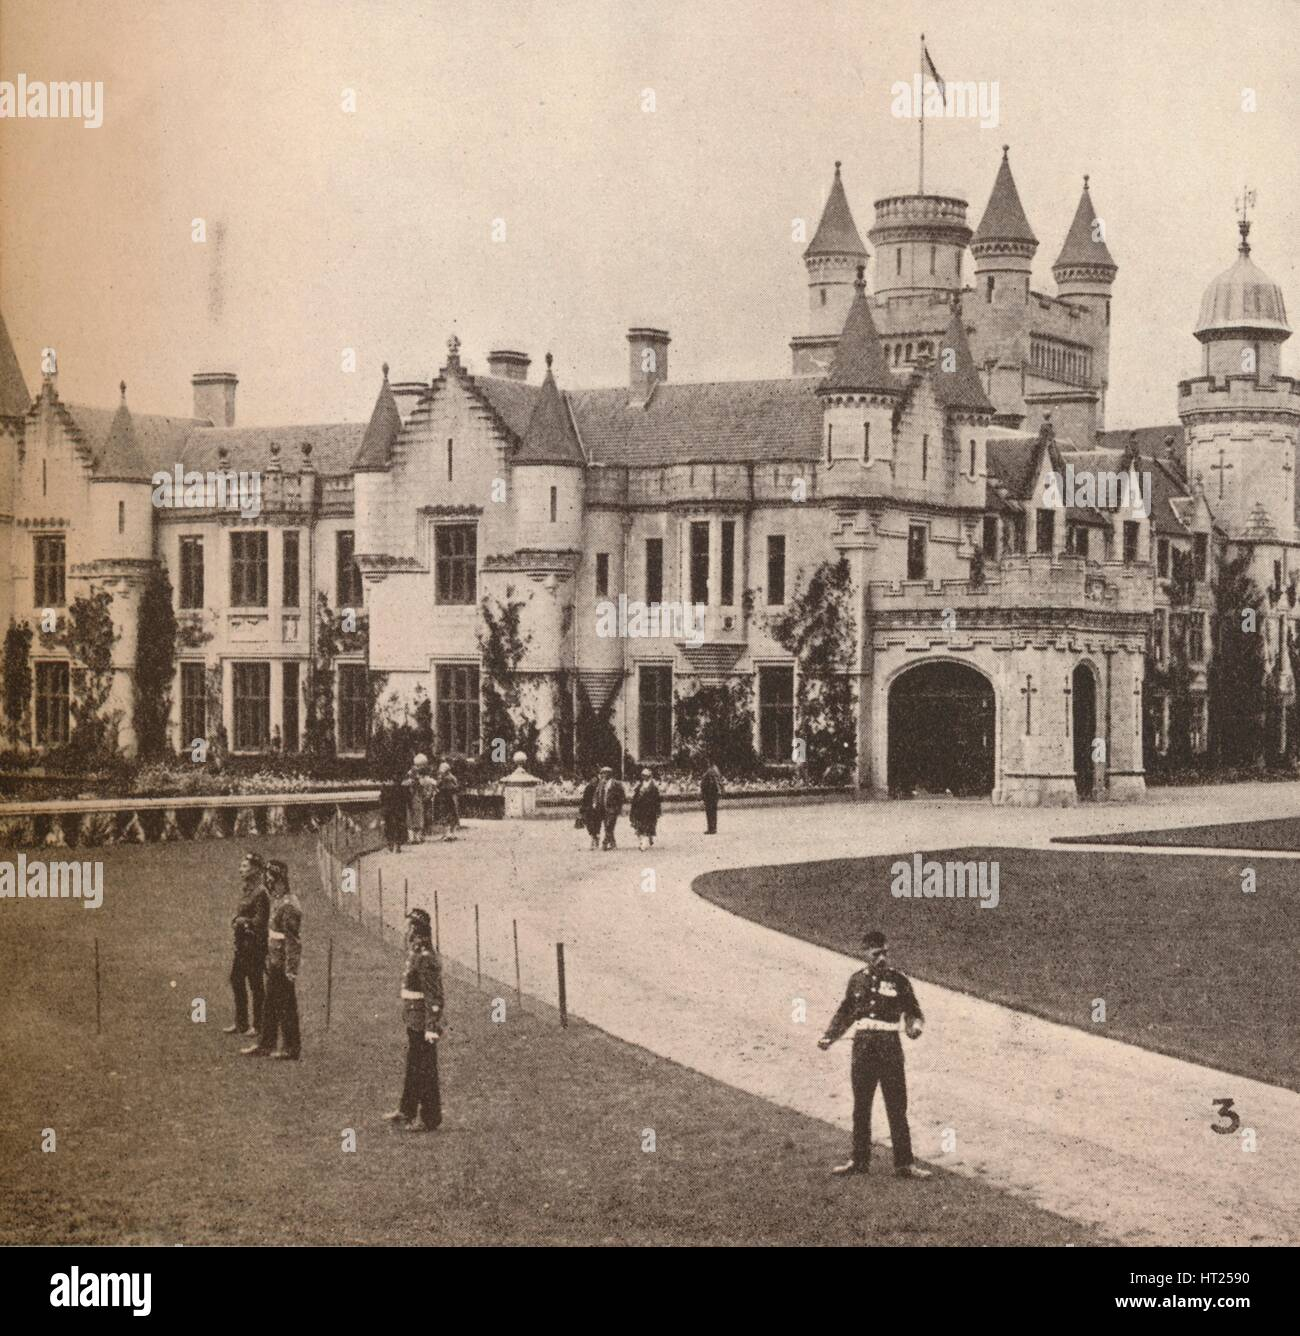 'Balmoral Castle, Their Majesties' Highland Home', c1916, (1935). Artist: Unknown. - Stock Image